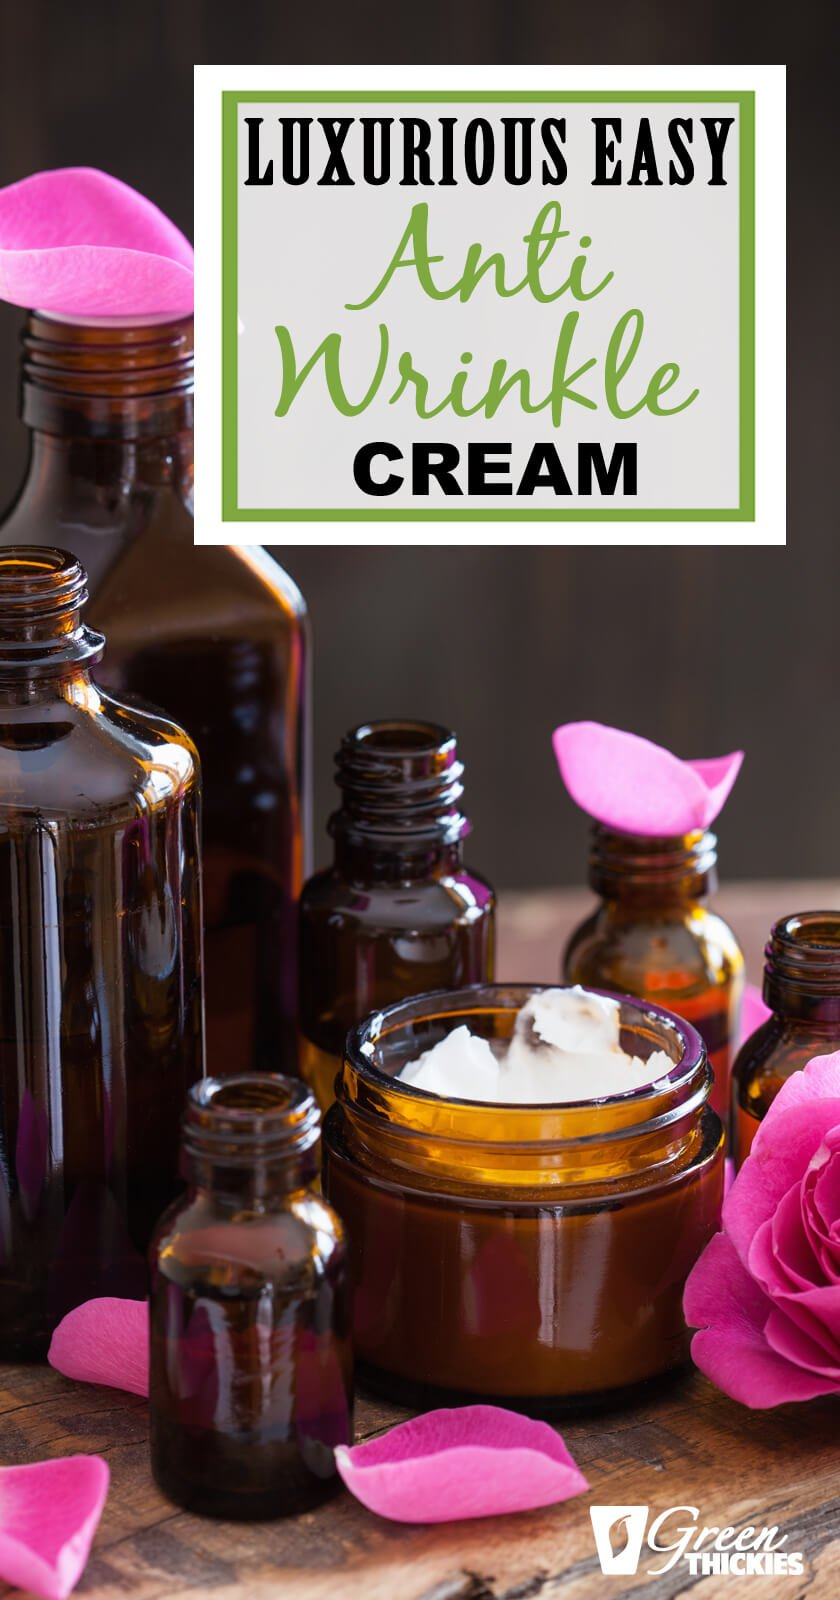 This homemade anti-wrinkle cream is better than any store bought cream you can findClick the pin to see the before and after photos!To make your own DIY cream using only a few natural products...Cocoa butter, coconut oil, sweet almond oil & the special ingredient Young Living Frankincense essential oil!Look younger with your own homemade beauty products!#greenthickies #antiwrinklecream #preventwrinklescream #diyantiwrinkle #diyantiaging #cocoabutter #coconutoil #almondoil...